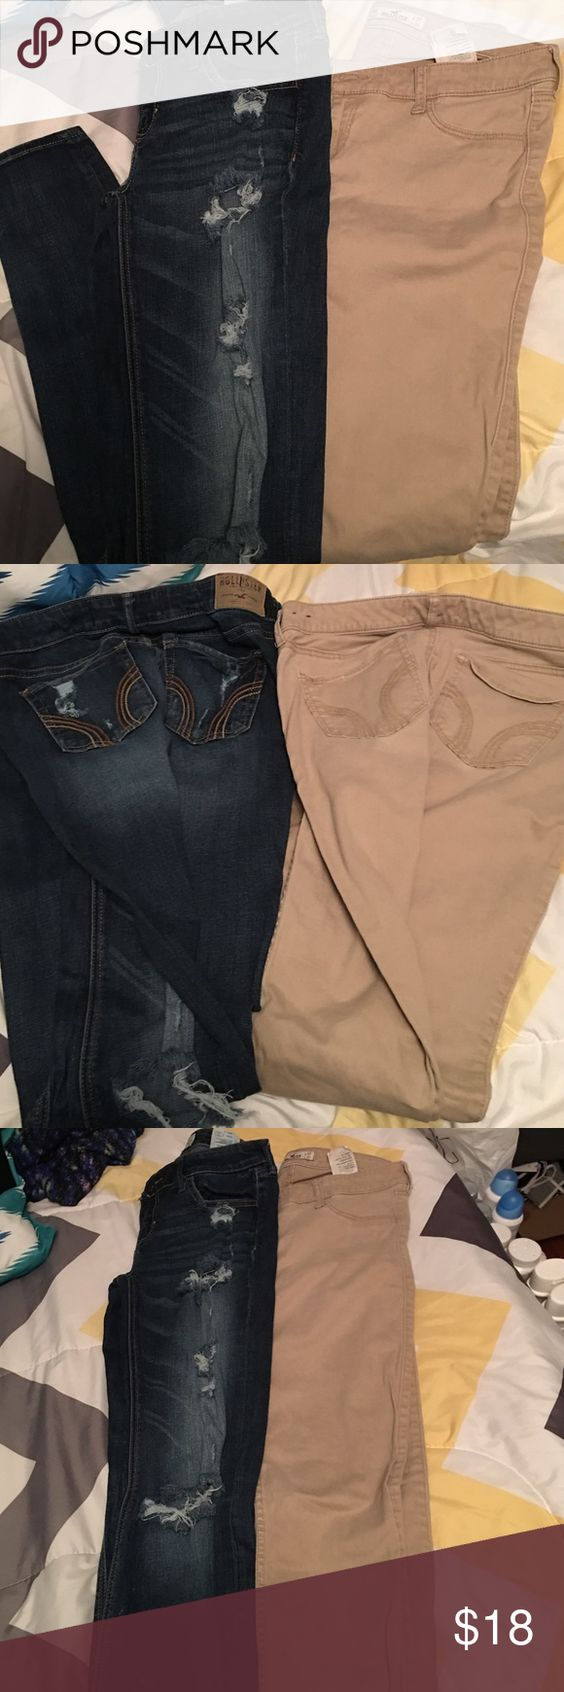 Hollister skinny jeans. Size 5 Too small . Worn a couple times . Condition 8/9. Both pair of jeans for $18. Paid $50 for both Hollister Jeans Skinny